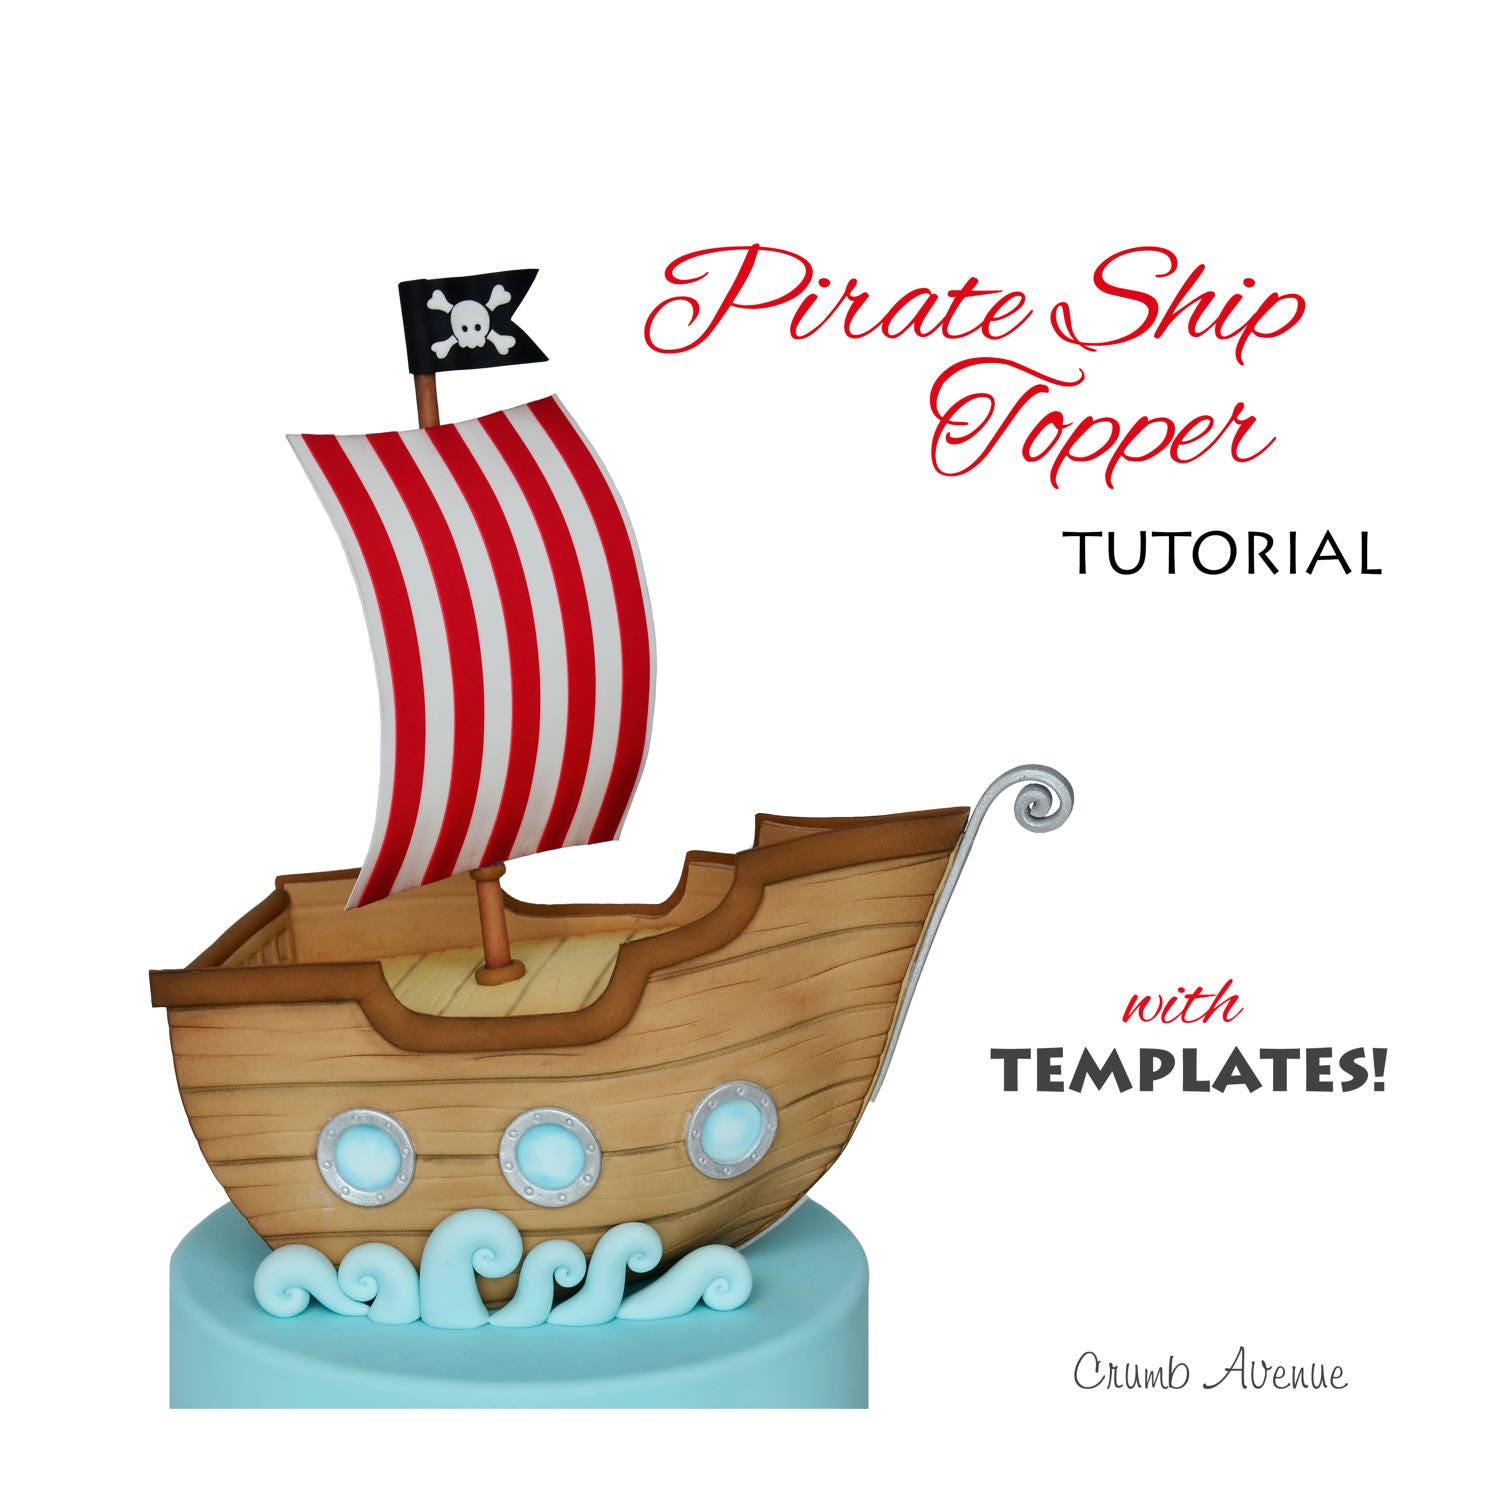 Pirate Ship Cake Topper TUTORIAL with TEMPLATES | Etsy